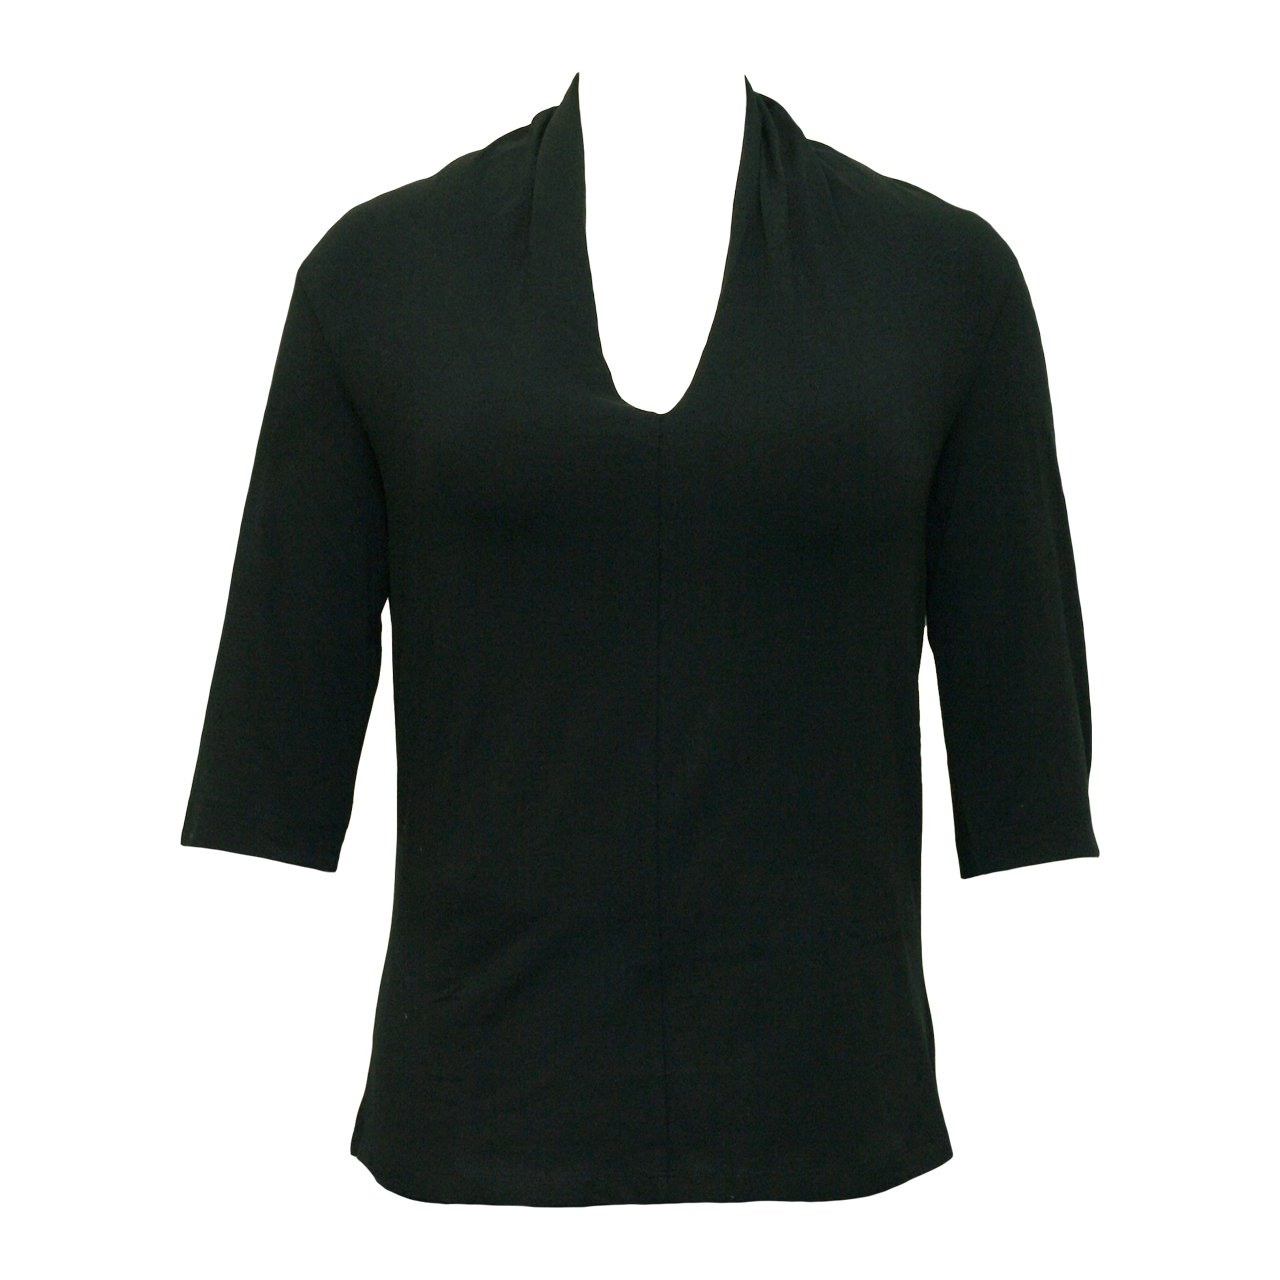 67c67dc4183deb Maggie's Organics Fitted Blouse at Amazon Women's Clothing store: